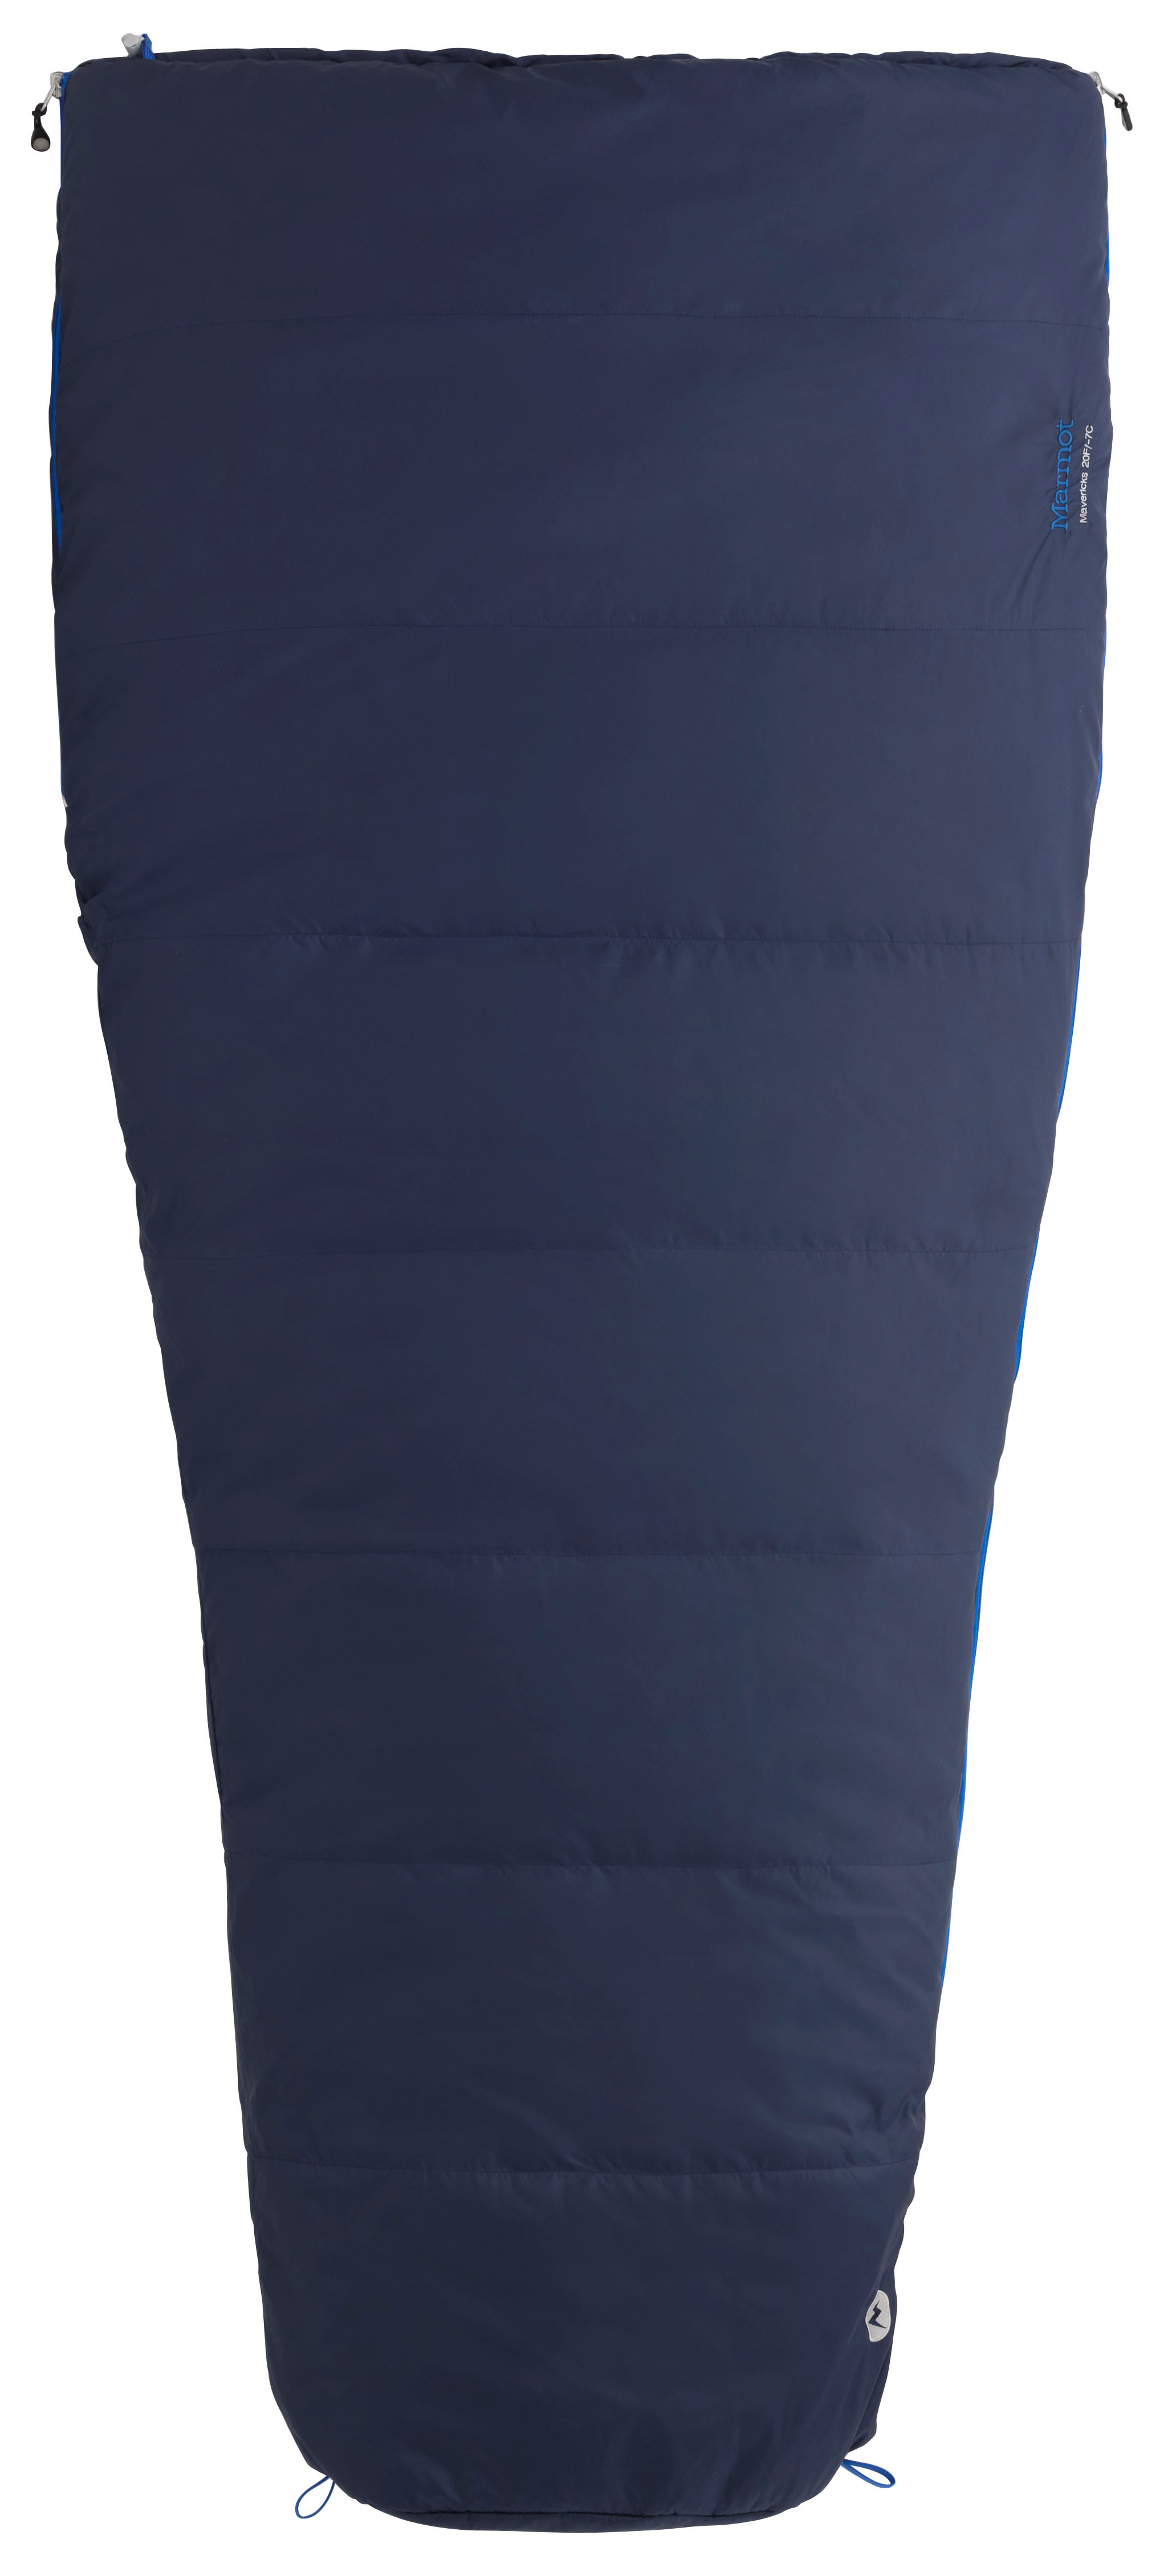 "Camp and Hike Key Features of the Marmot Maverick 20 Semi Rec Sleeping Bag: Rated at 30 degrees Weight: 3lb 8oz Size: Regular 6ft Spirafill 120 100% Polyester embossed DWR 2.2 oz 100% polyester taffeta DWR 2.2oz SpiraFil High Loft Insulation Dual zippers Compression stuff sack ""Feely"" draw cords Shingle construction Snagless draft tube Two way zipper sliders Brushed lining in chest and foot box Two hang loops - $84.95"